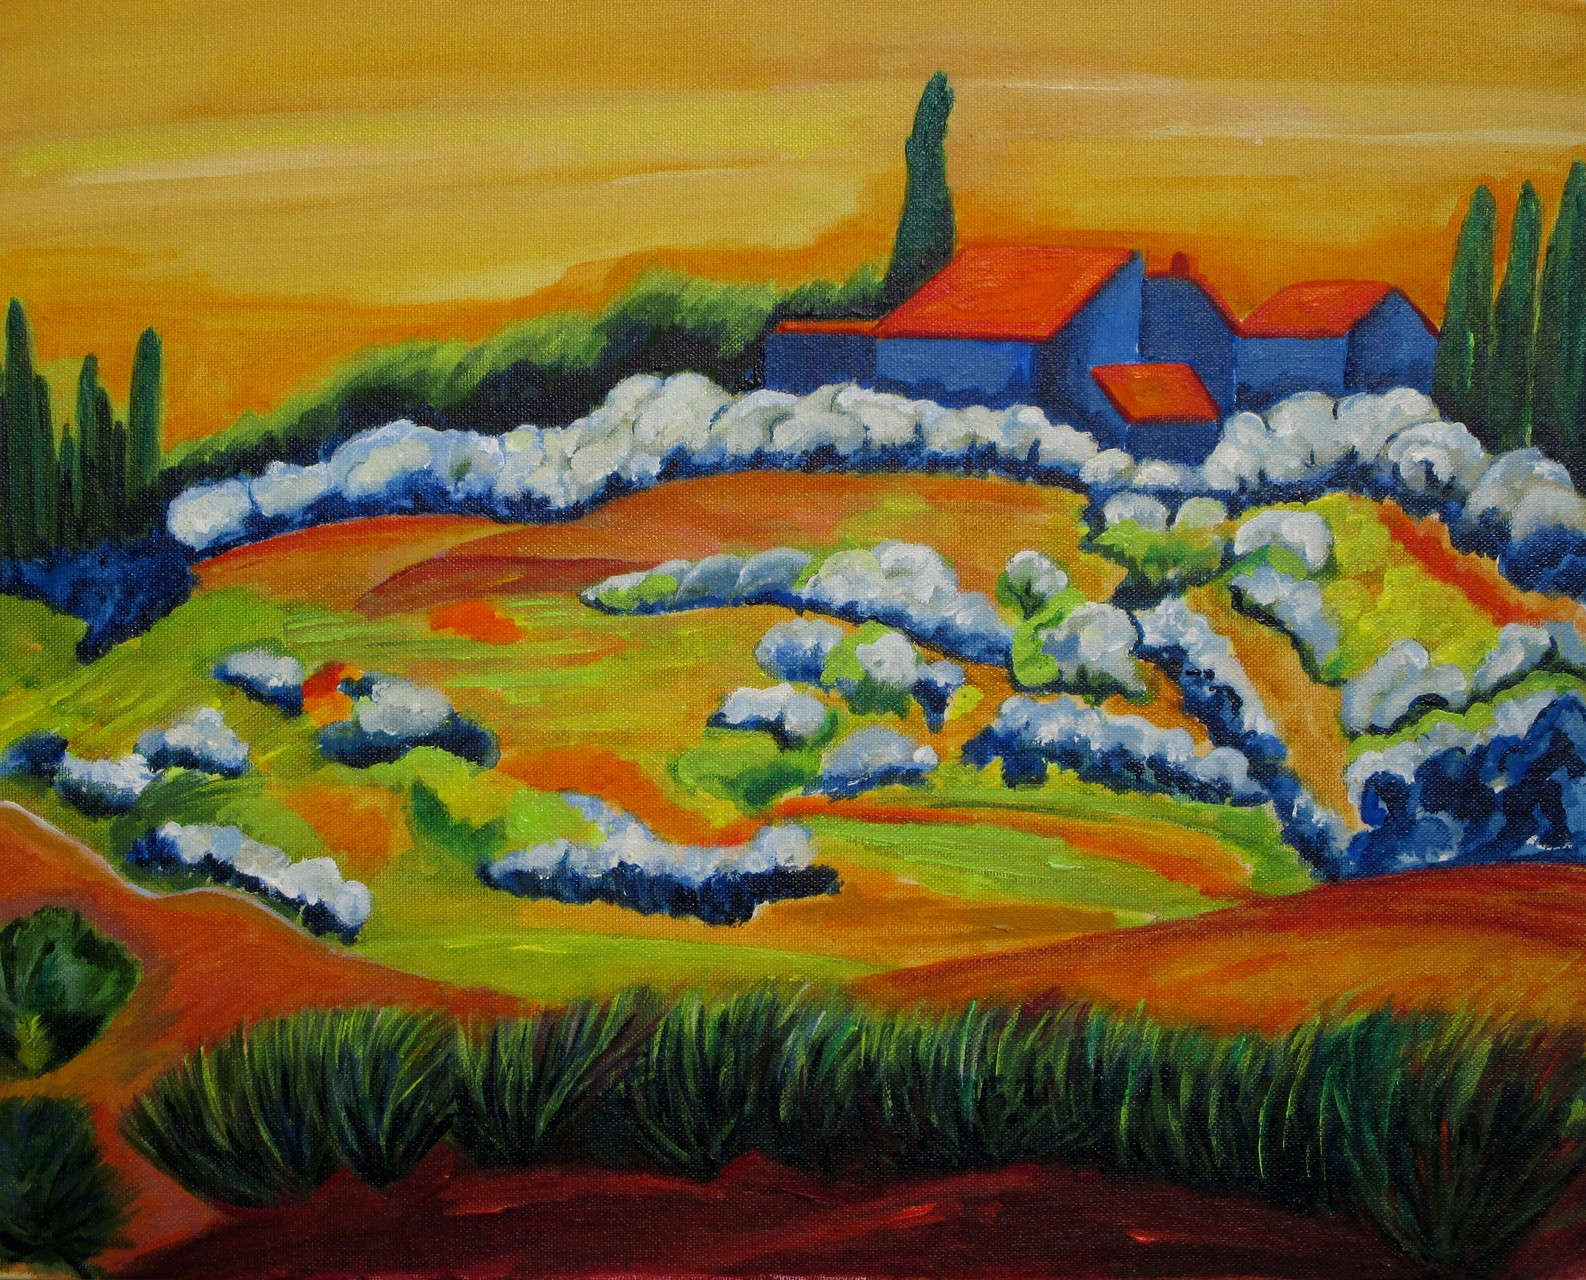 Tuscan Hills, acrylic on paper, 20 x 16, SOLD